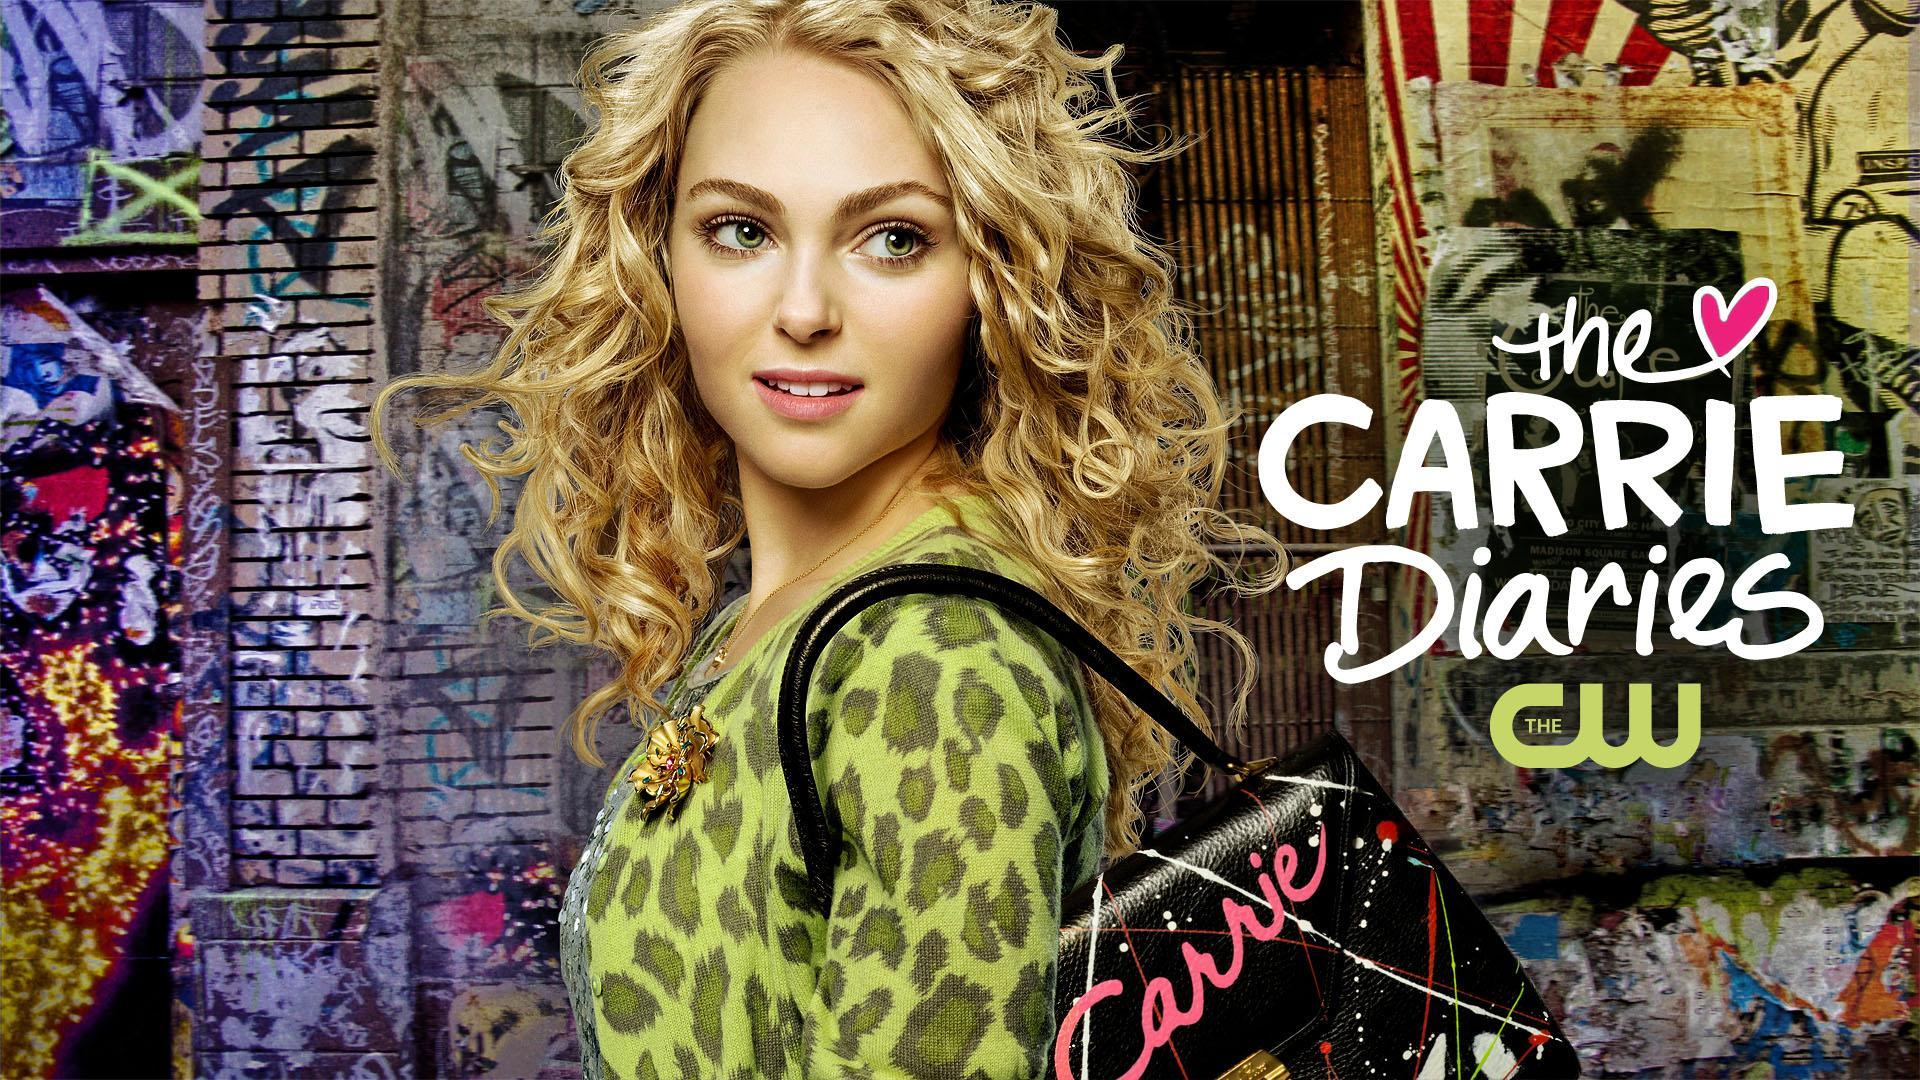 'The Carrie Diaries' isn't a perfect prequel, but it can stand on its own